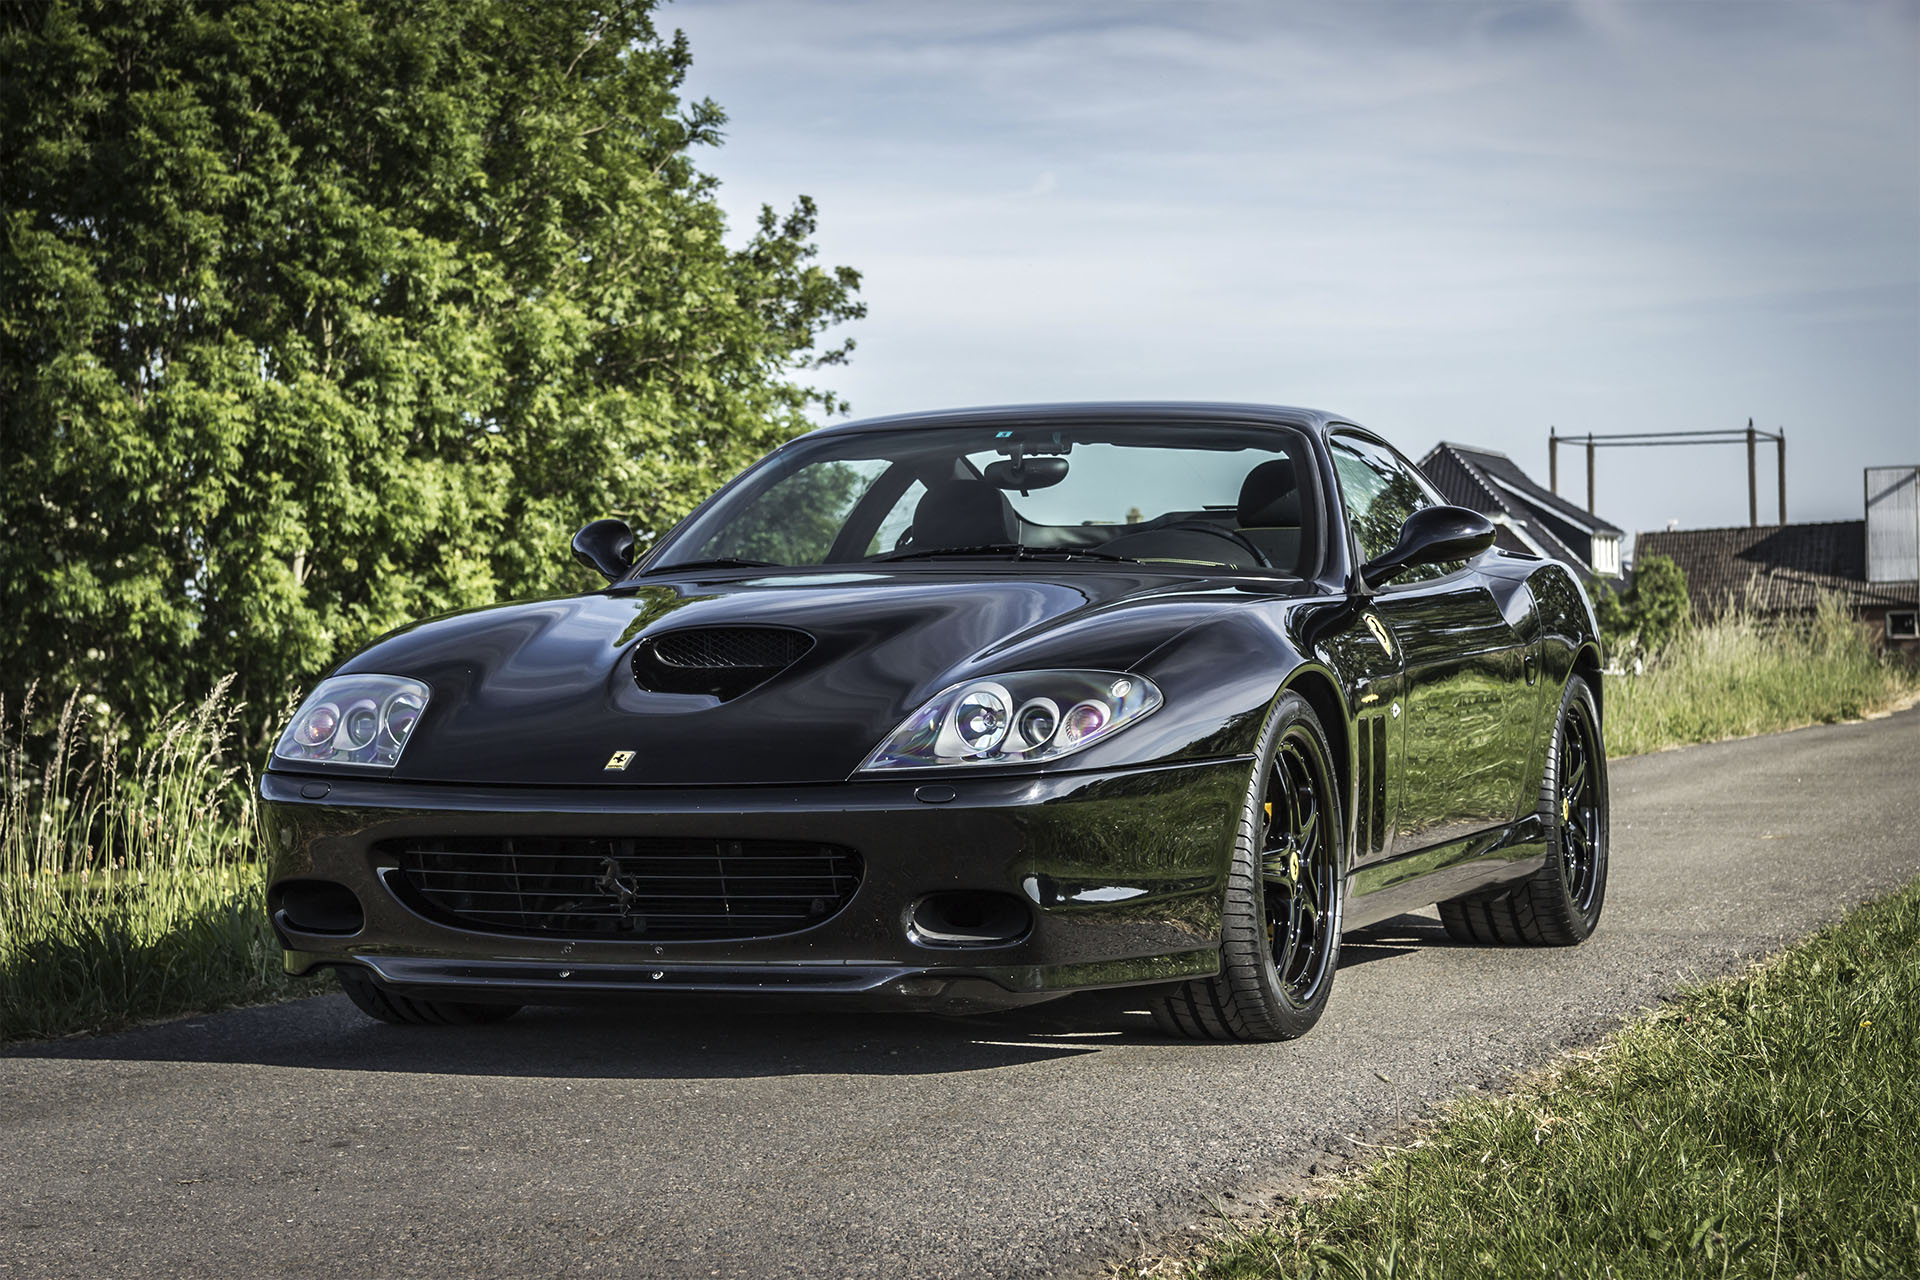 Real Art On Wheels | 2002 Ferrari 575M Maranello